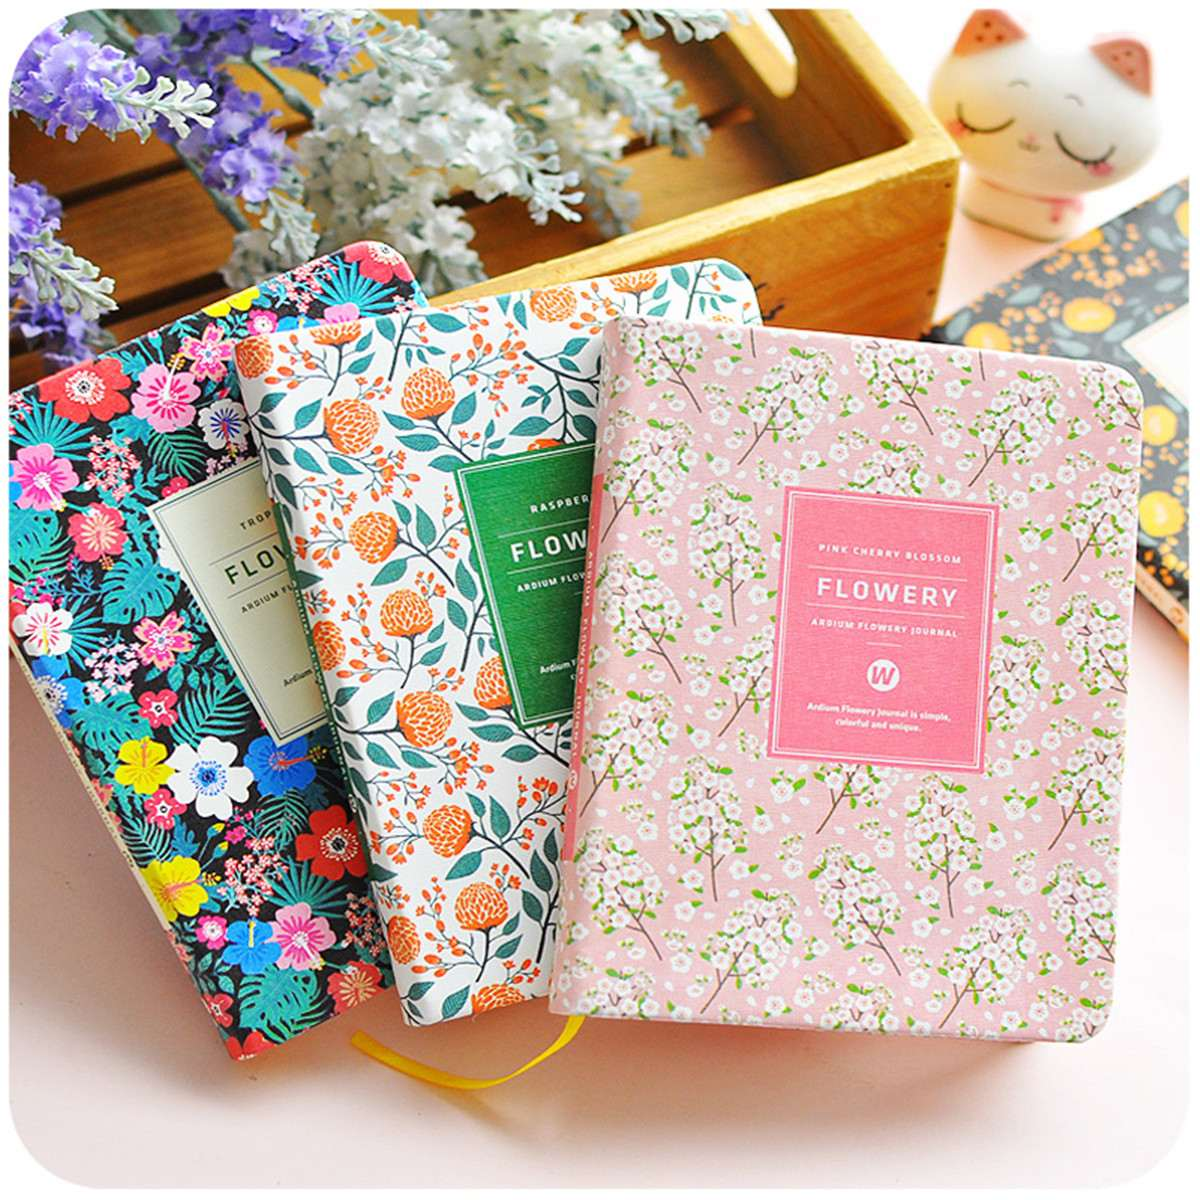 New Arrival Cute PU Leather Floral Flower Schedule Book Diary Weekly Planner Notebook School Office Supplies Kawaii StationeryNew Arrival Cute PU Leather Floral Flower Schedule Book Diary Weekly Planner Notebook School Office Supplies Kawaii Stationery